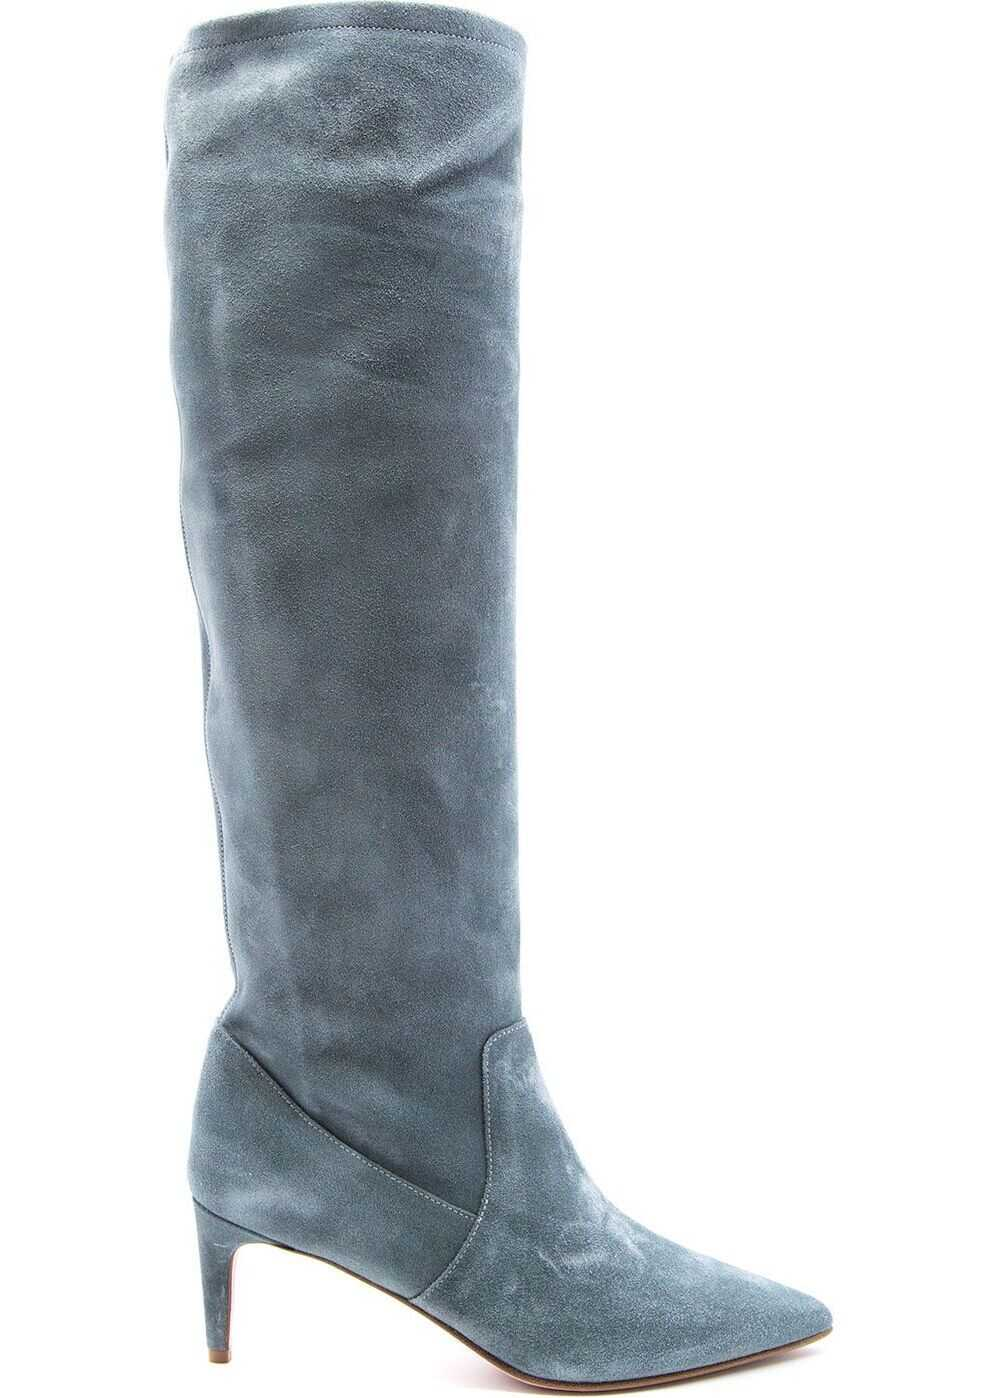 RED VALENTINO Leather Boots LIGHT BLUE